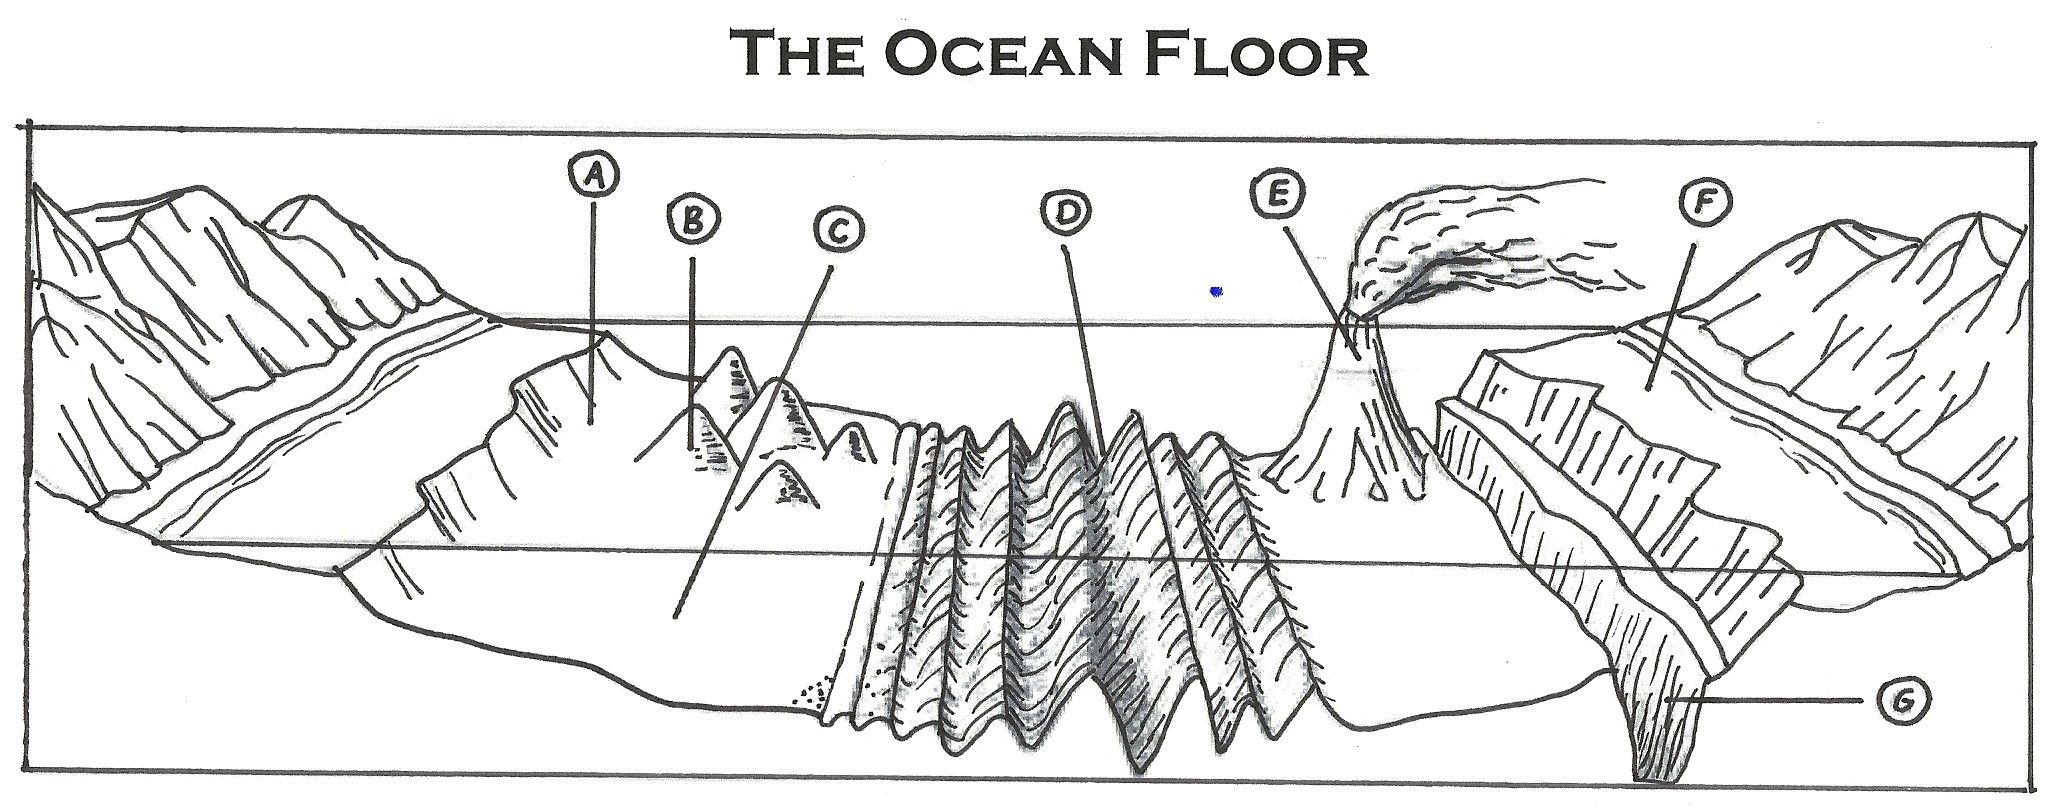 Exploring The Ocean Floor Worksheet Answers